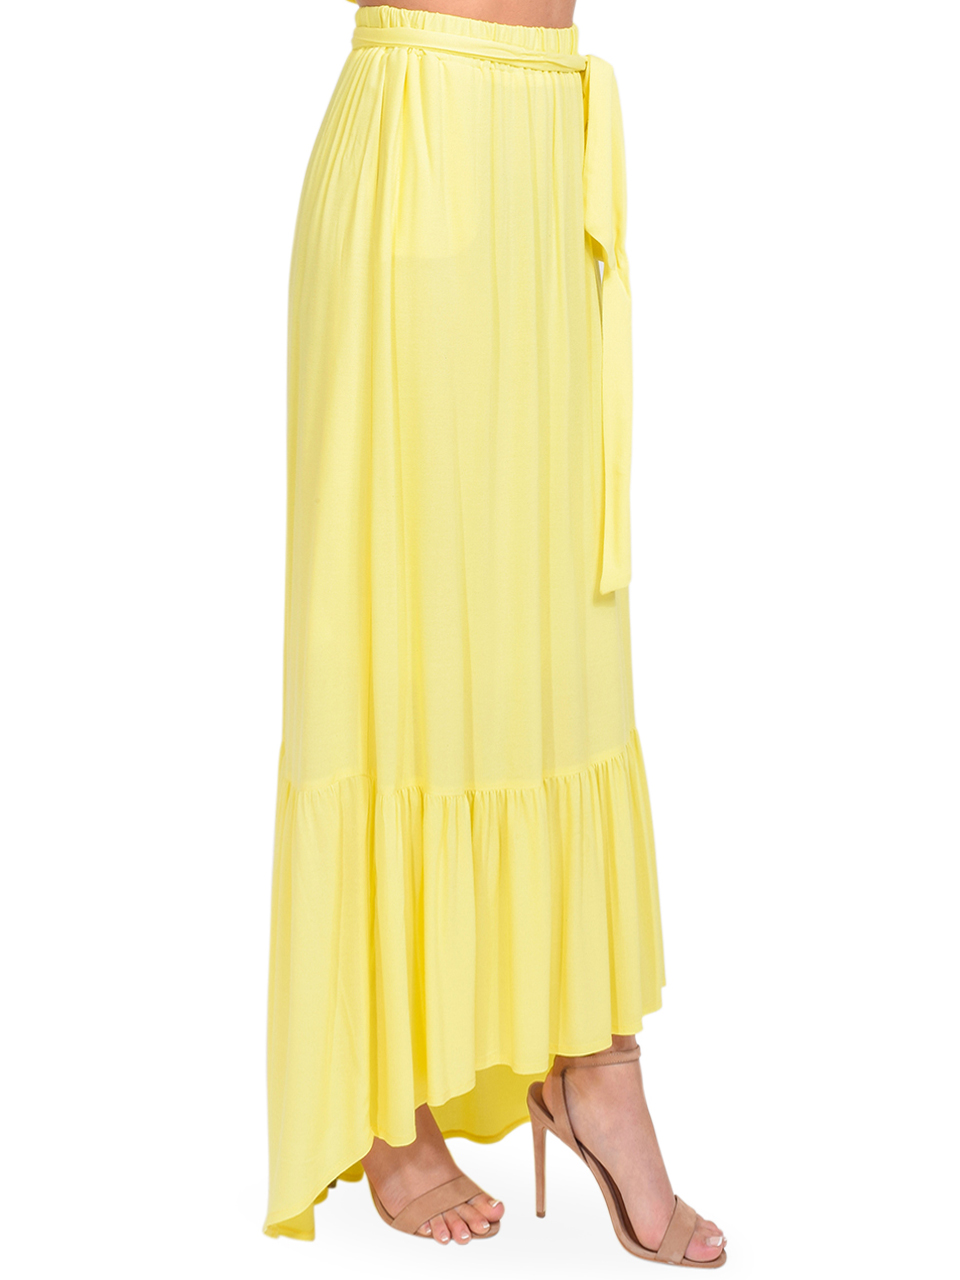 KASIA Sifnos Maxi Skirt in Yellow Side View